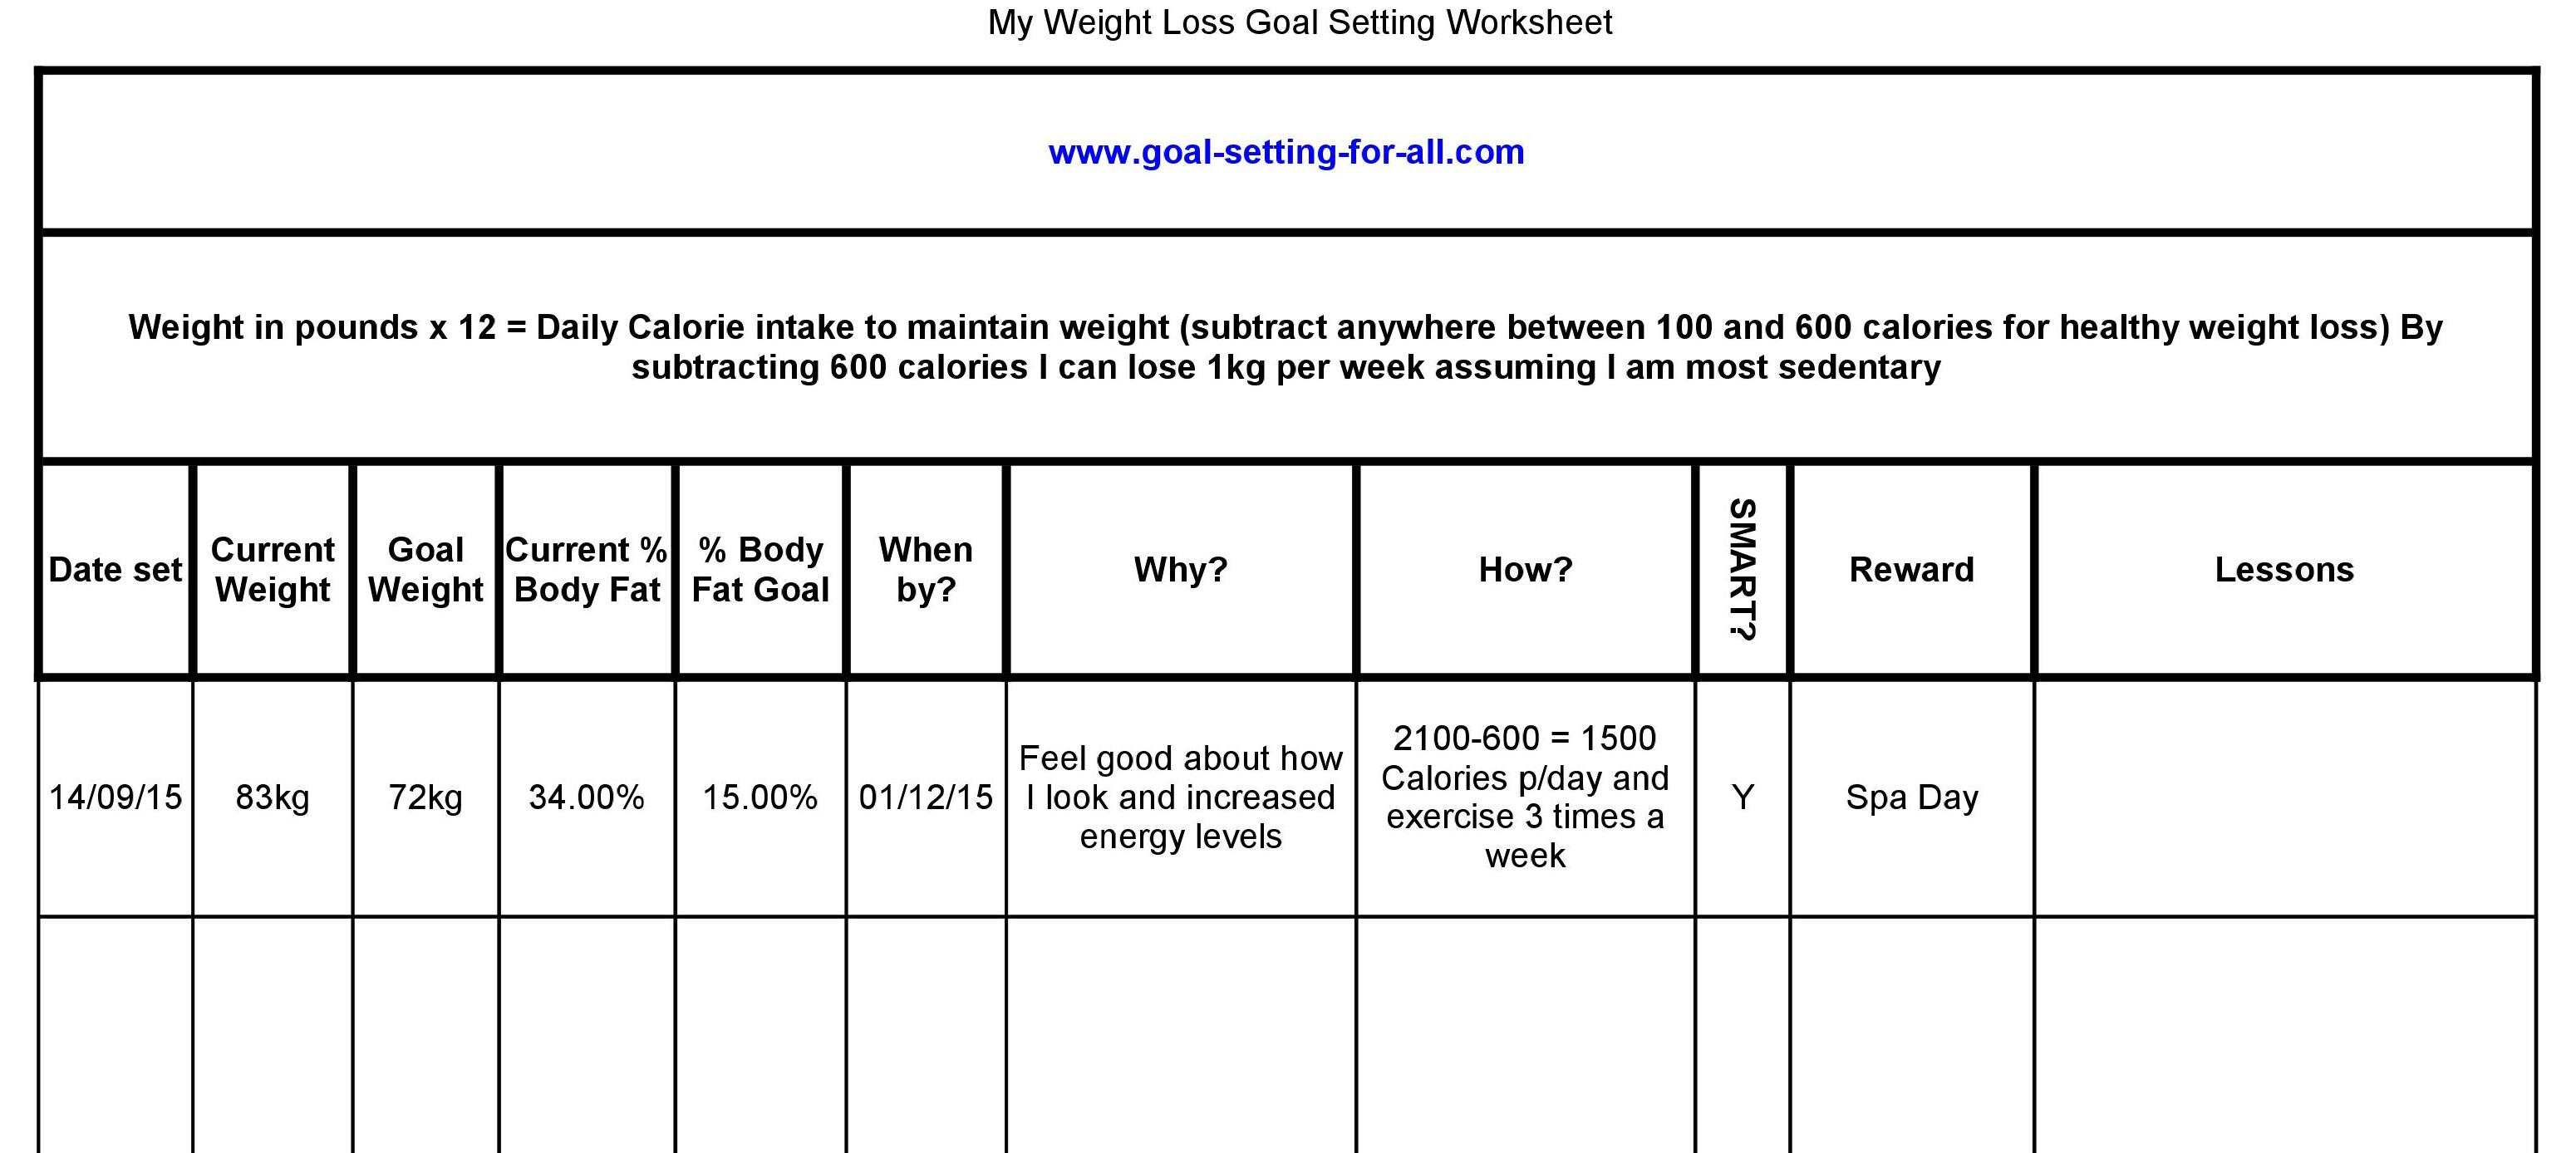 Worksheets Academic Goal Setting Worksheet weight loss goal setting worksheet